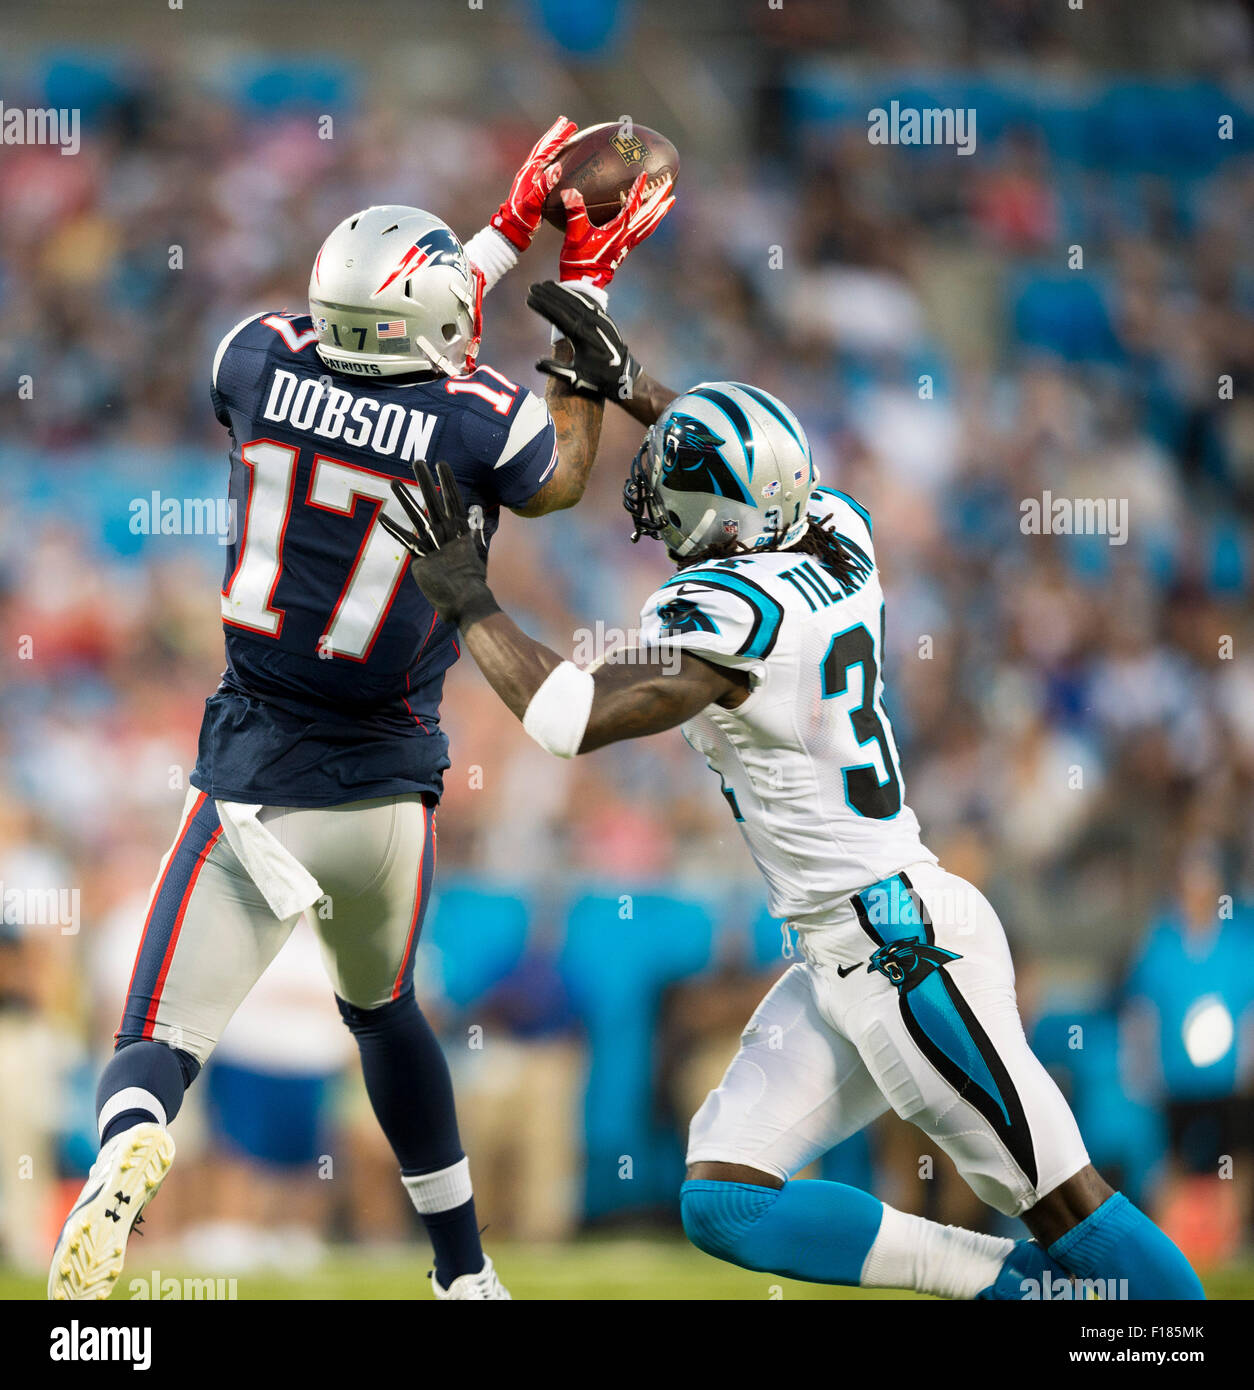 abd2ce0c4a7c Carolina Panthers defensive back Charles Tillman (31) knocks the ball out  of the hands of New England Patriots wide receiver Aaron Dobson (17) during  the ...